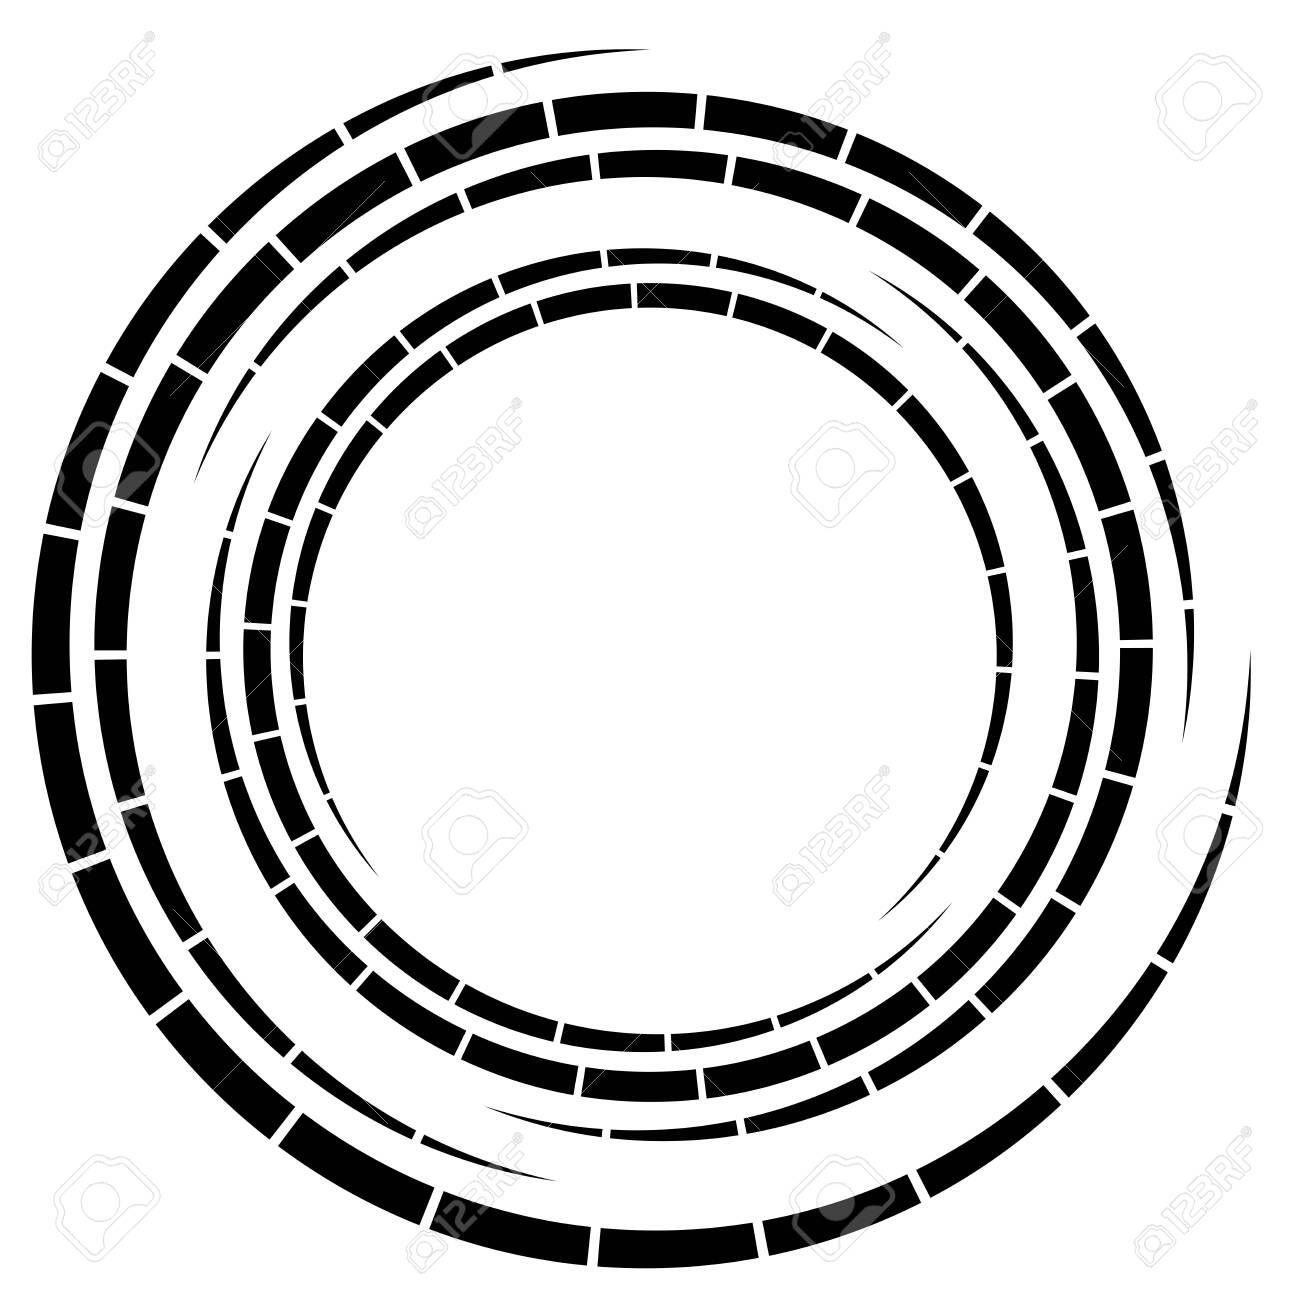 Segmented Circle With Rotation Circular And Radial Dashed Lines Volute Helix Abstract Concentric Circle Spiral Swirl Twirl Element Abstract Geometric Swirl